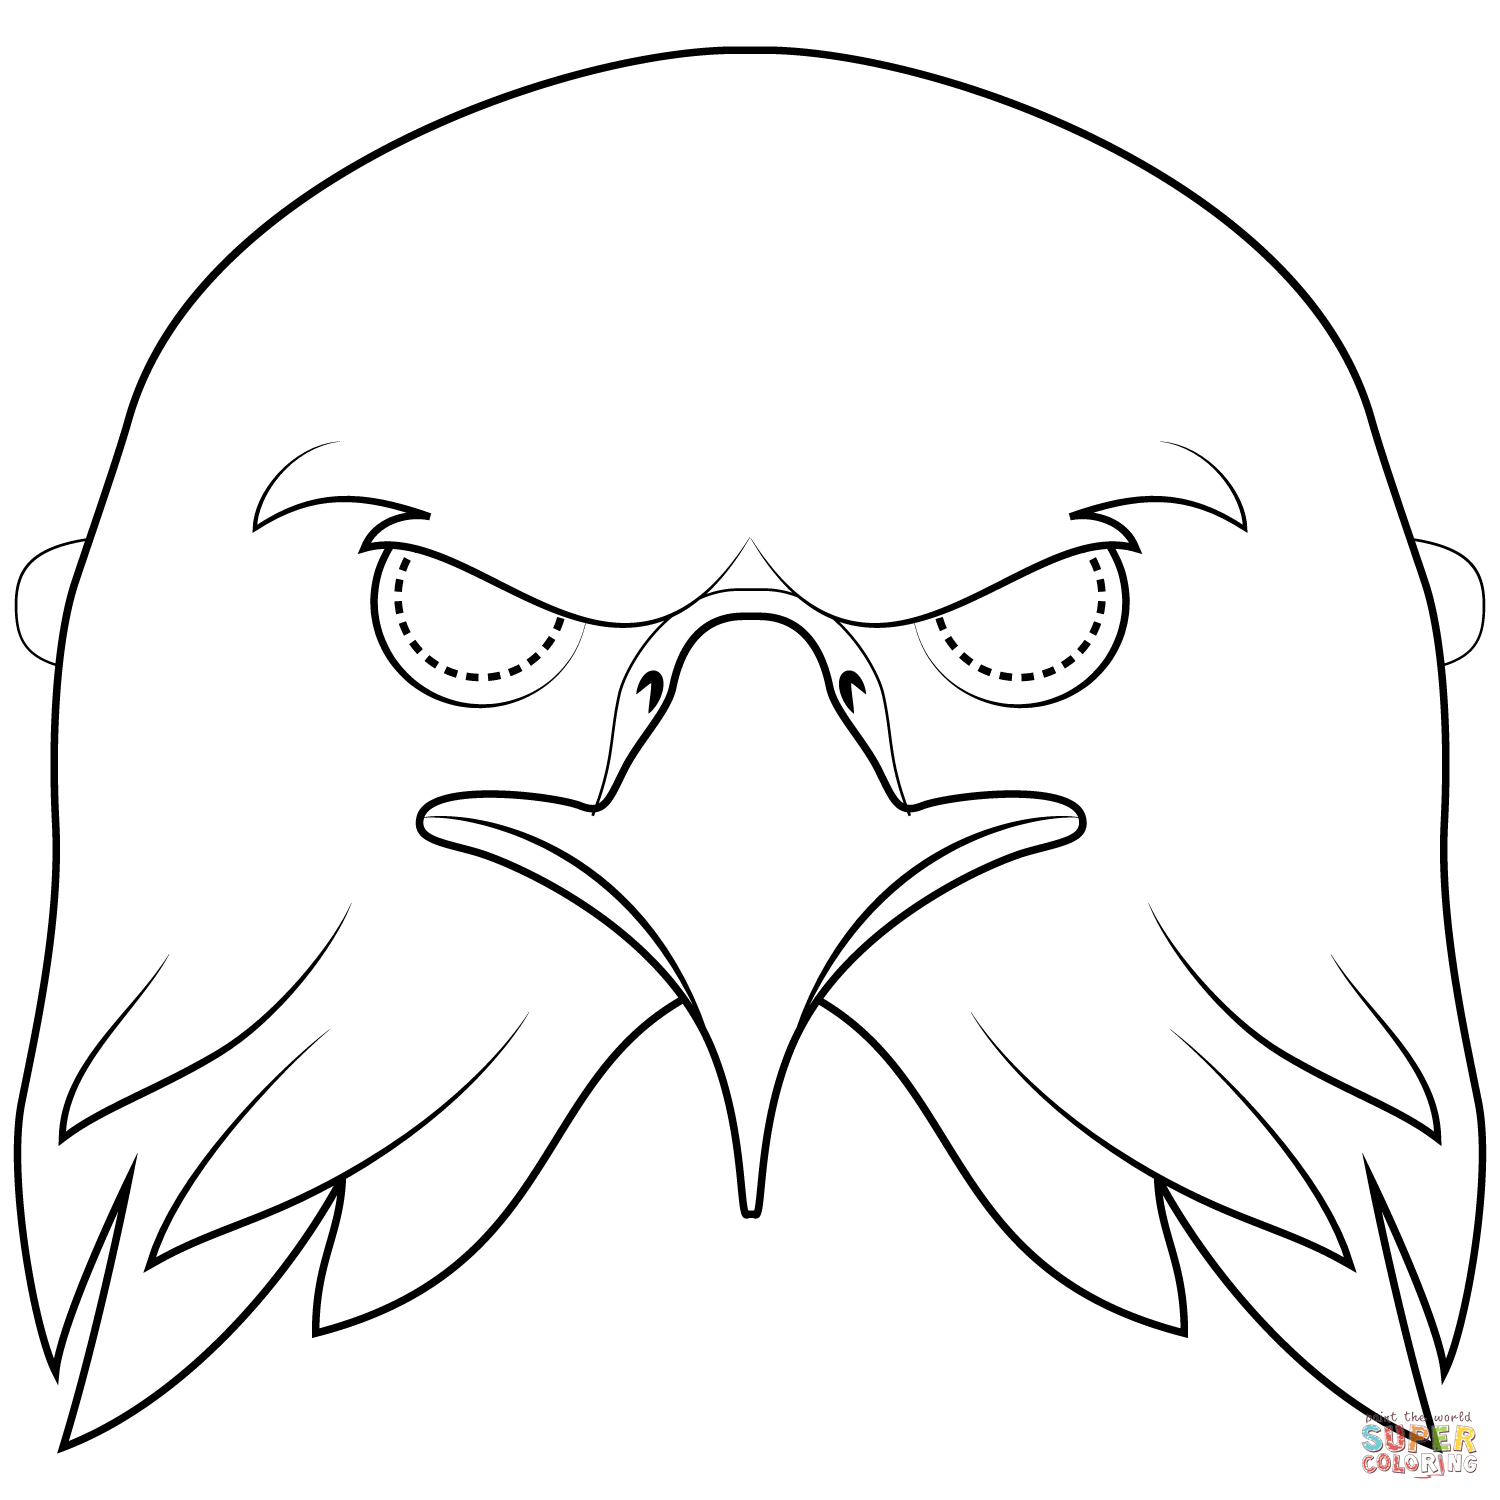 Bald Eagle Mask Coloring Page Free Printable Coloring Pages Eagle Mask Printable Coloring Masks Coloring Pages